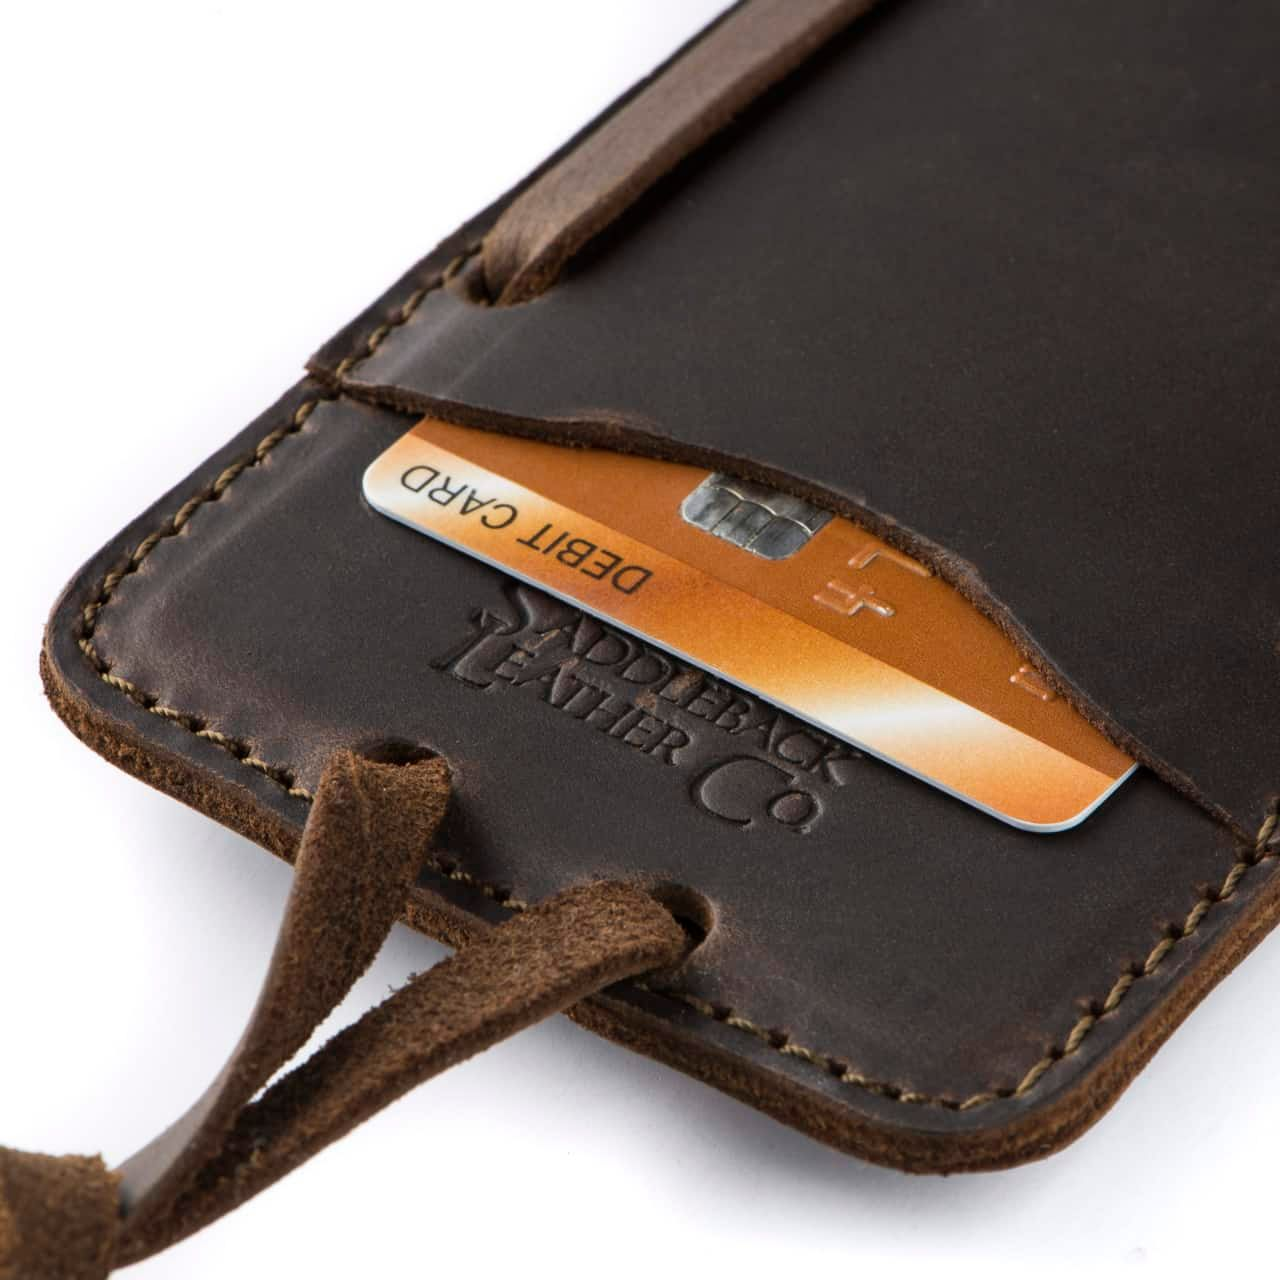 Leather iPhone 8 Case in Color Dark Coffee Brown Zoomed in on the Saddleback Logo and Card Slot with a Card